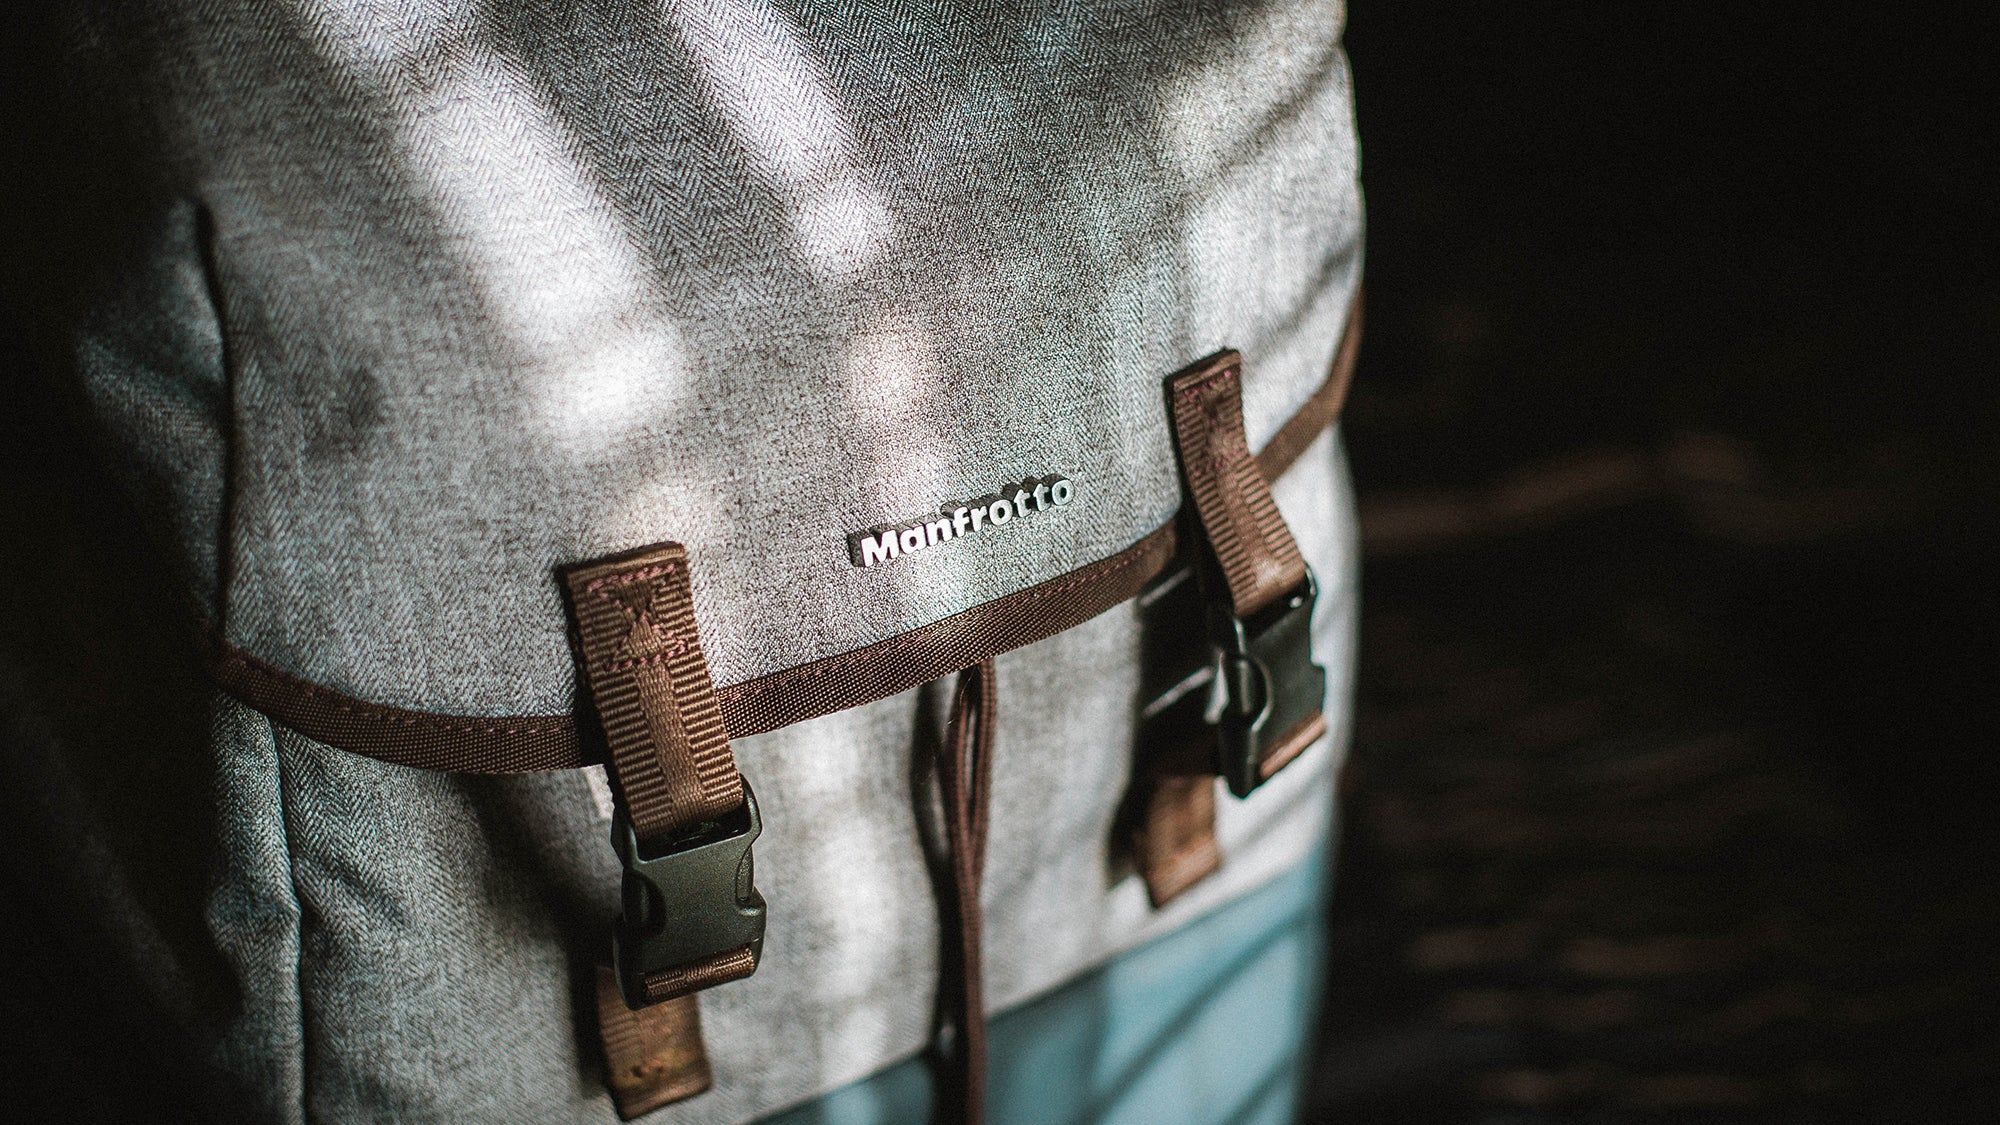 brown, grey, and blue Manfrotto bag with straps is one of the best camera bags